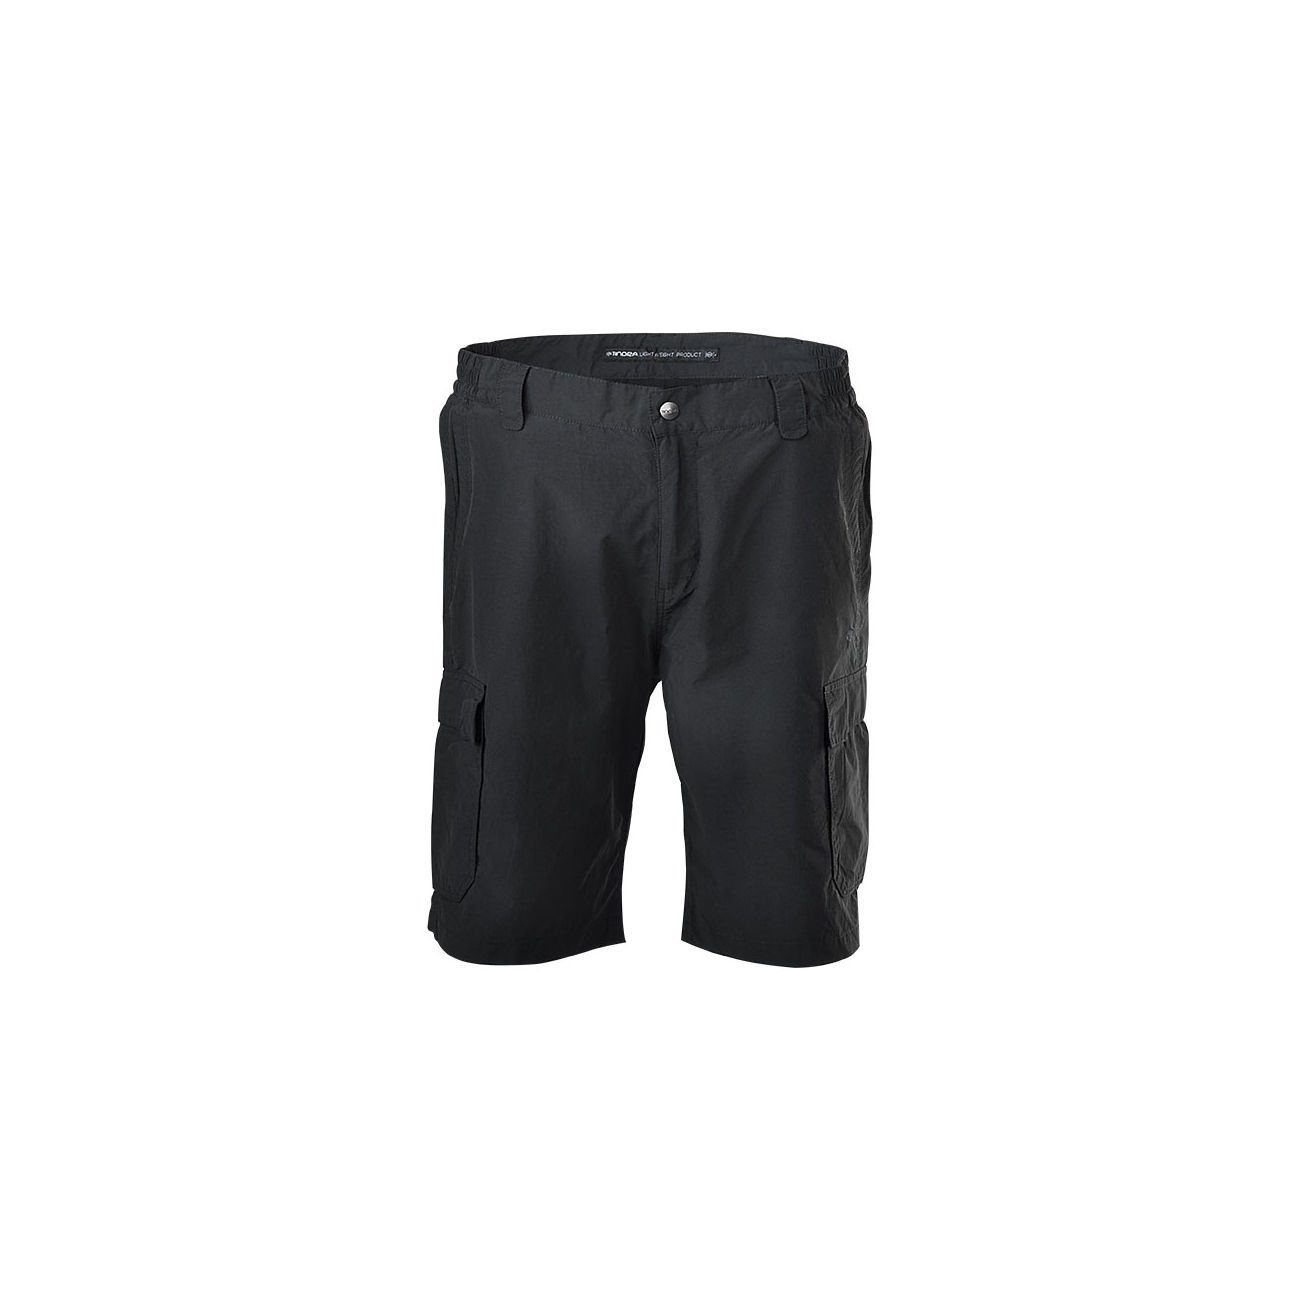 Tindra Eiger Men's Shorts, dark grey 0